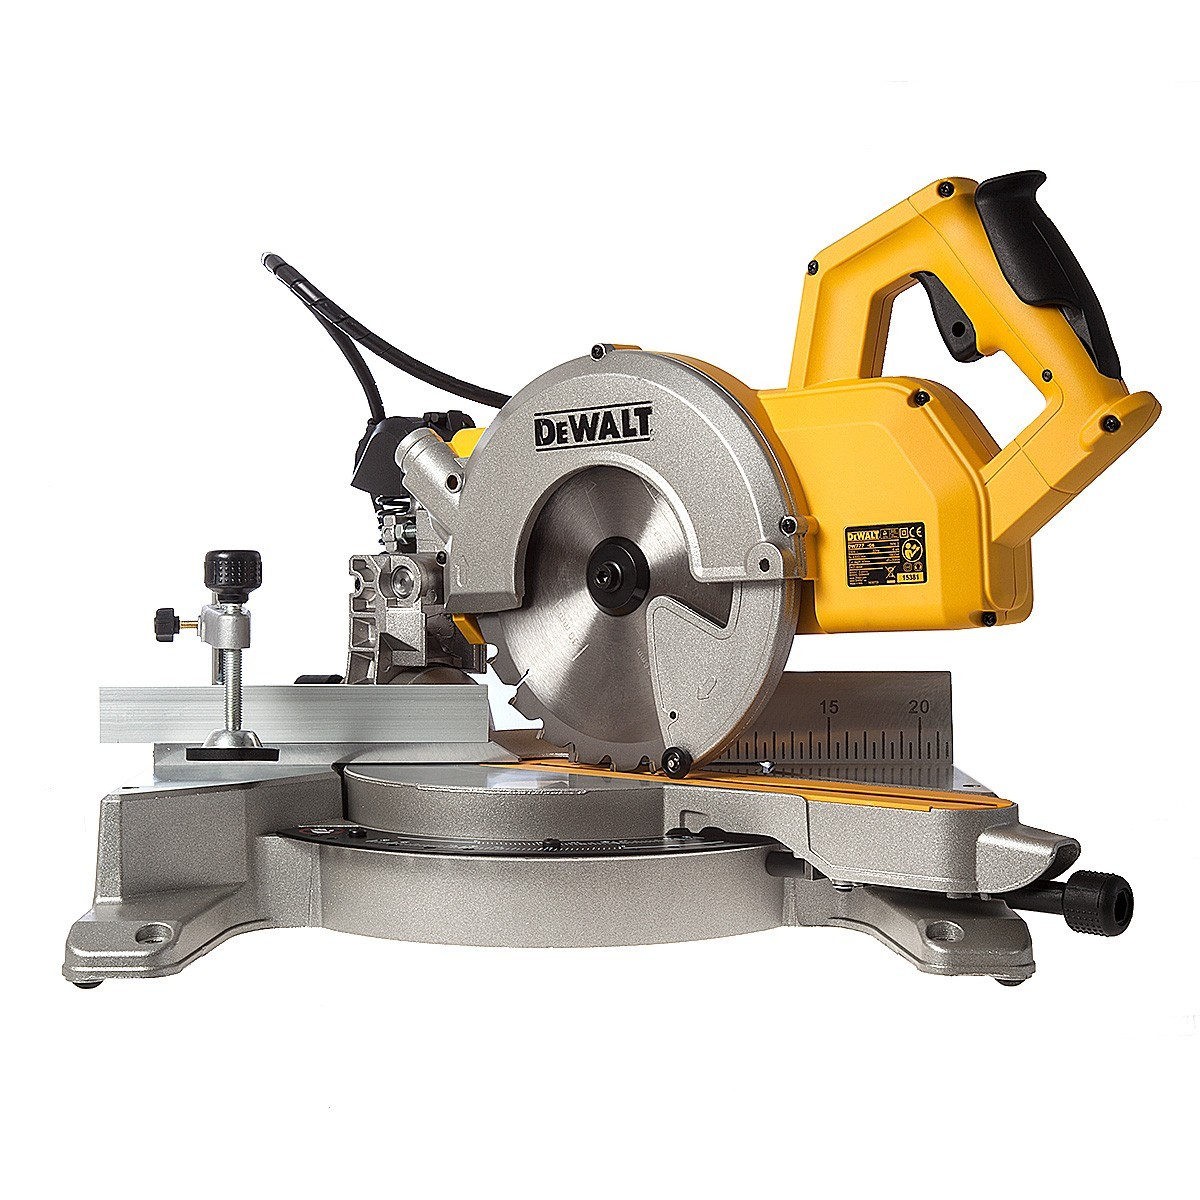 DeWalt DW777 216mm Compound Slide Mitre Saw 240v